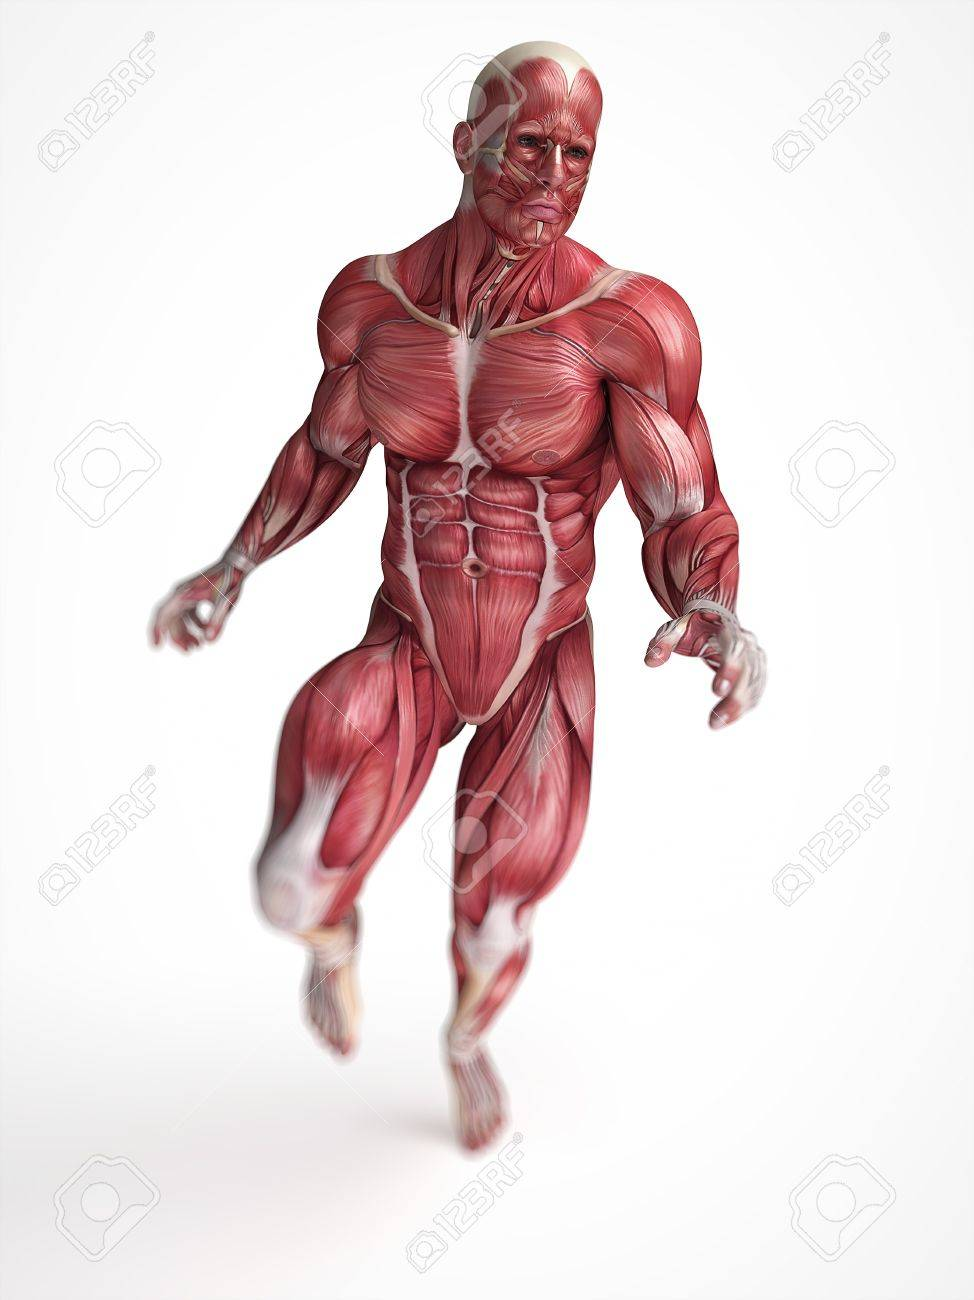 Human Muscular System Artwork Stock Photo Picture And Royalty Free